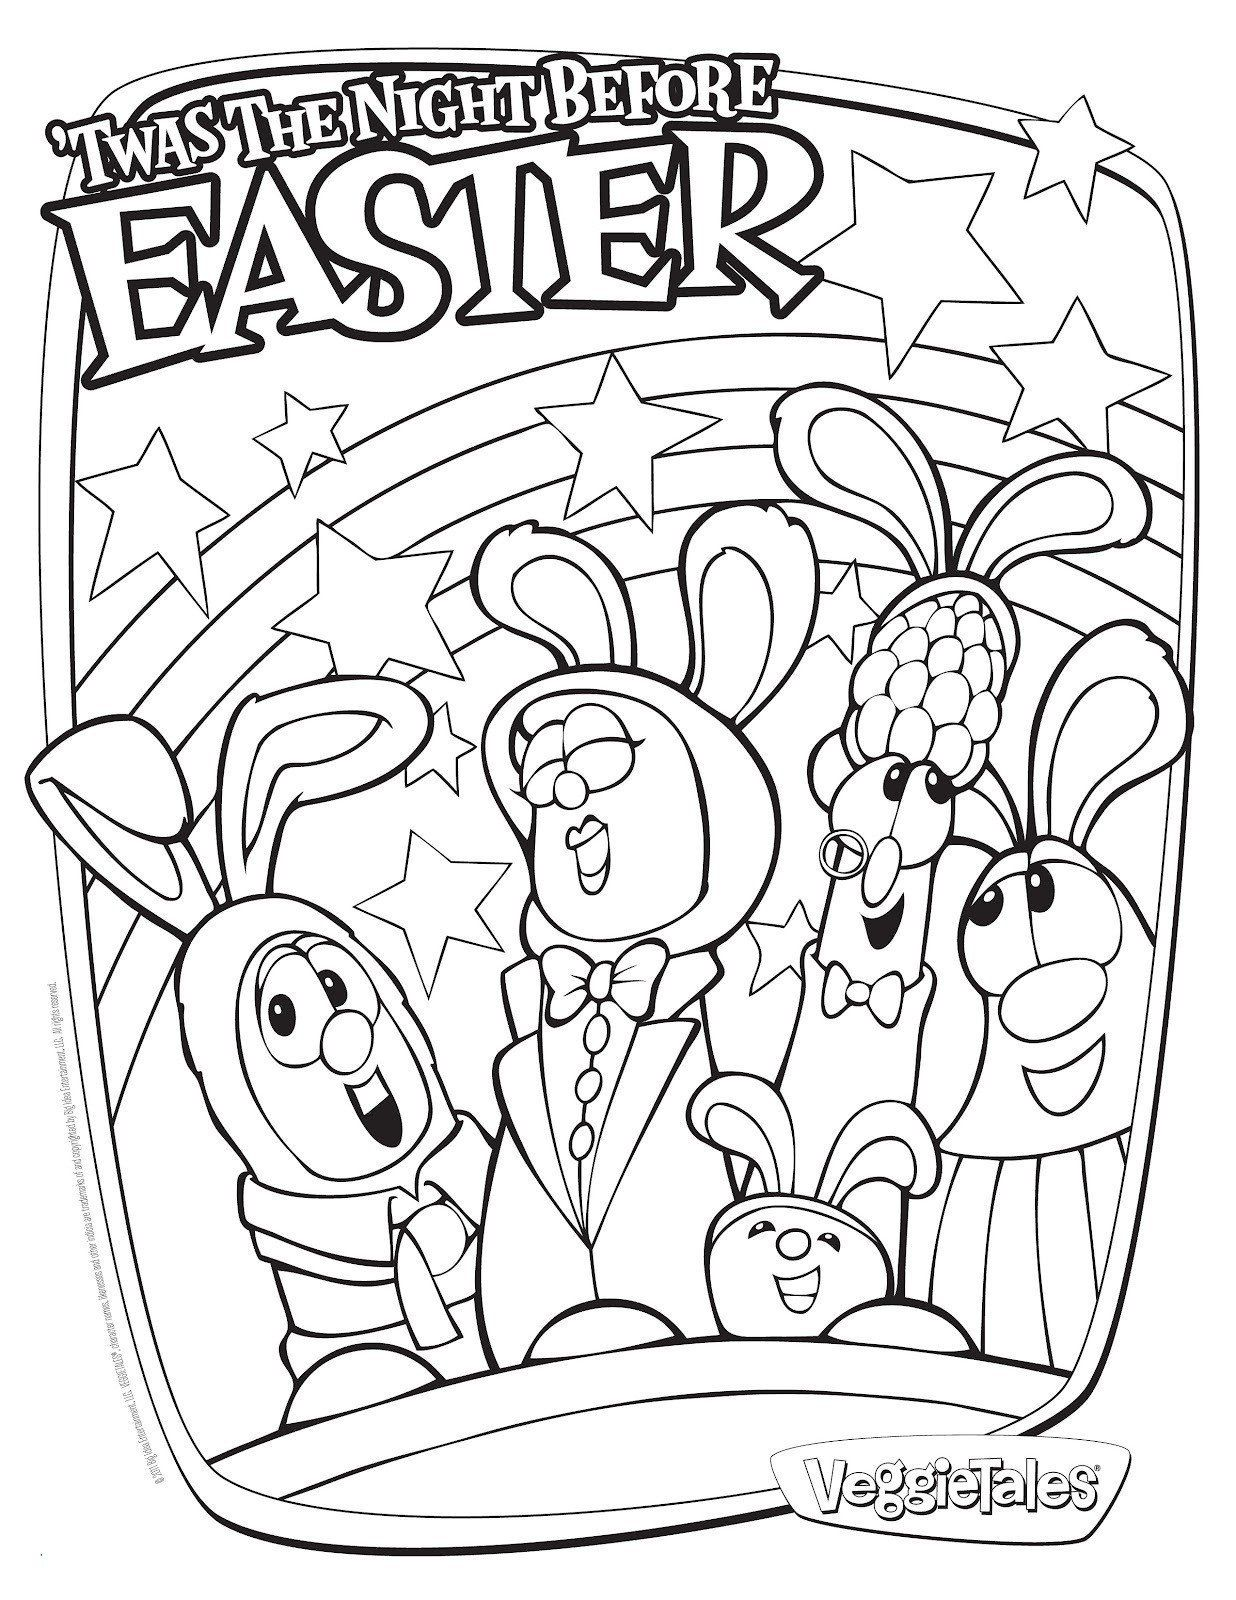 Oriental Trading Coloring Pages New Coloring Ideas Coloring Ideas Krishna Pages Thanksgiving Coloring Pages Sunday School Coloring Pages Animal Coloring Pages